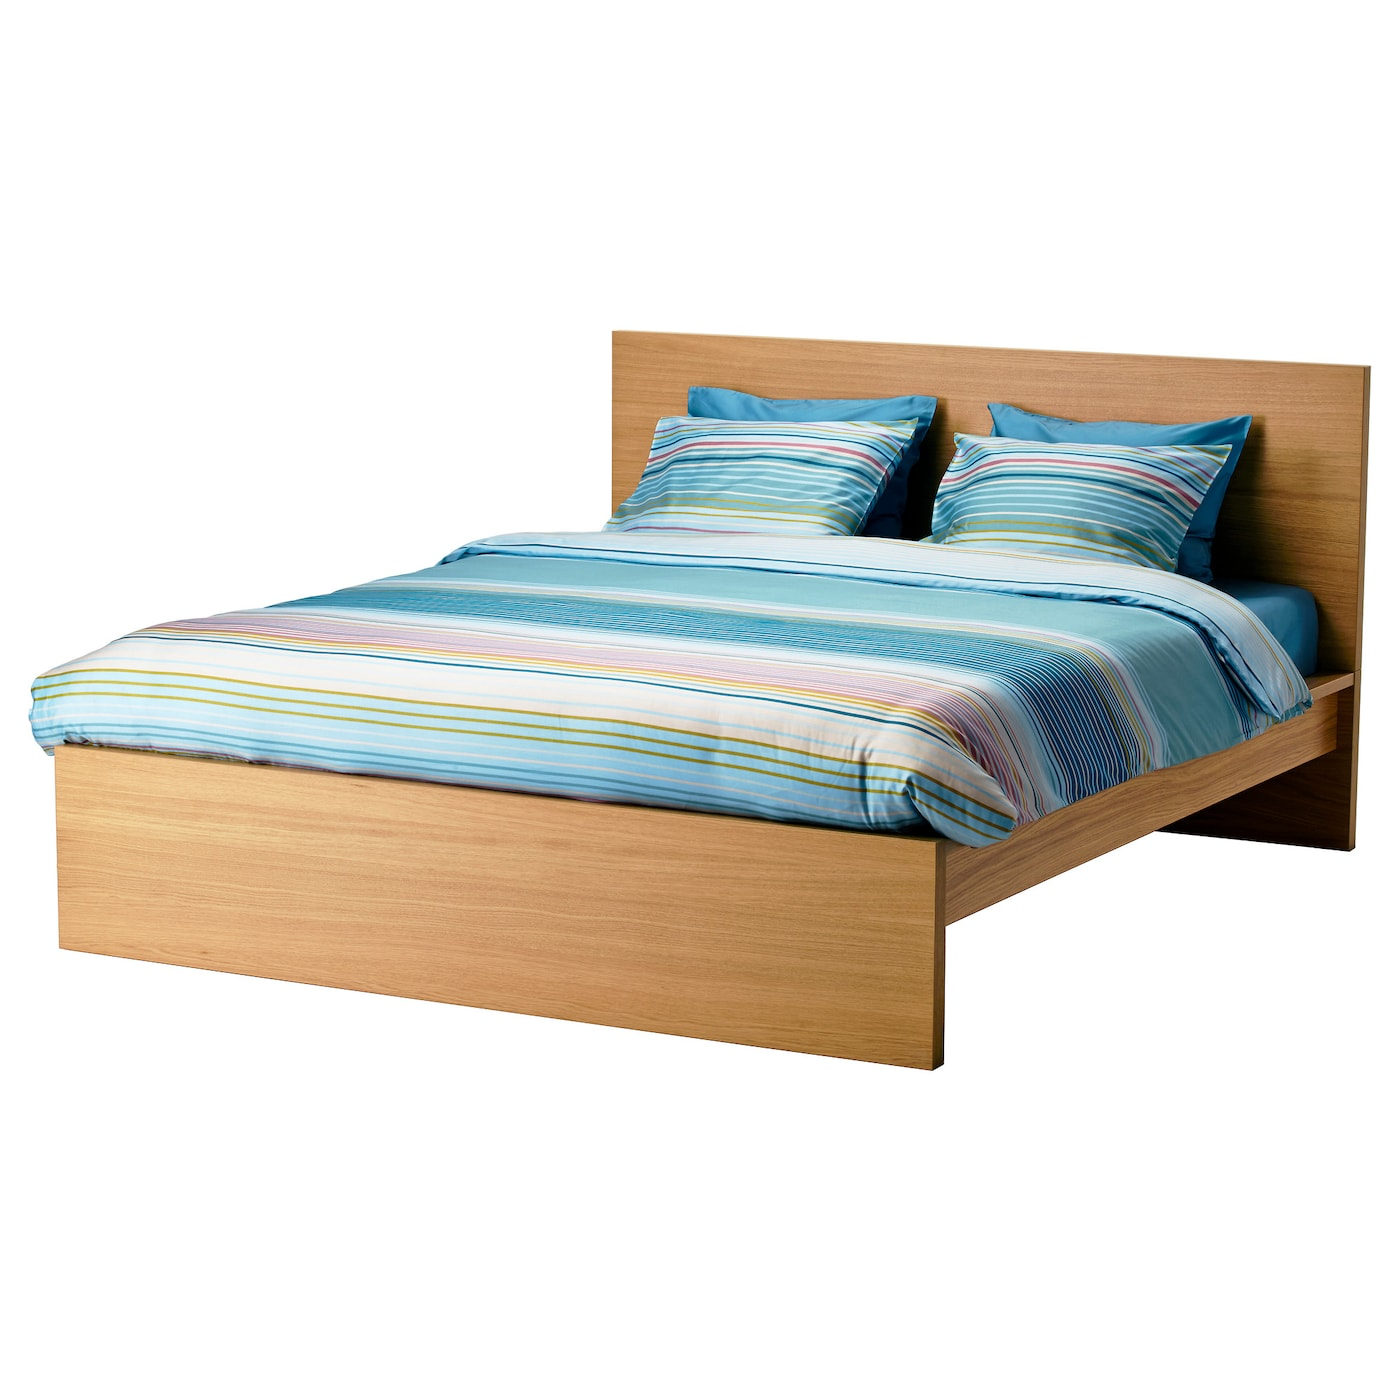 Malm bed frame high oak veneer lur y standard double ikea for Full size bed ikea